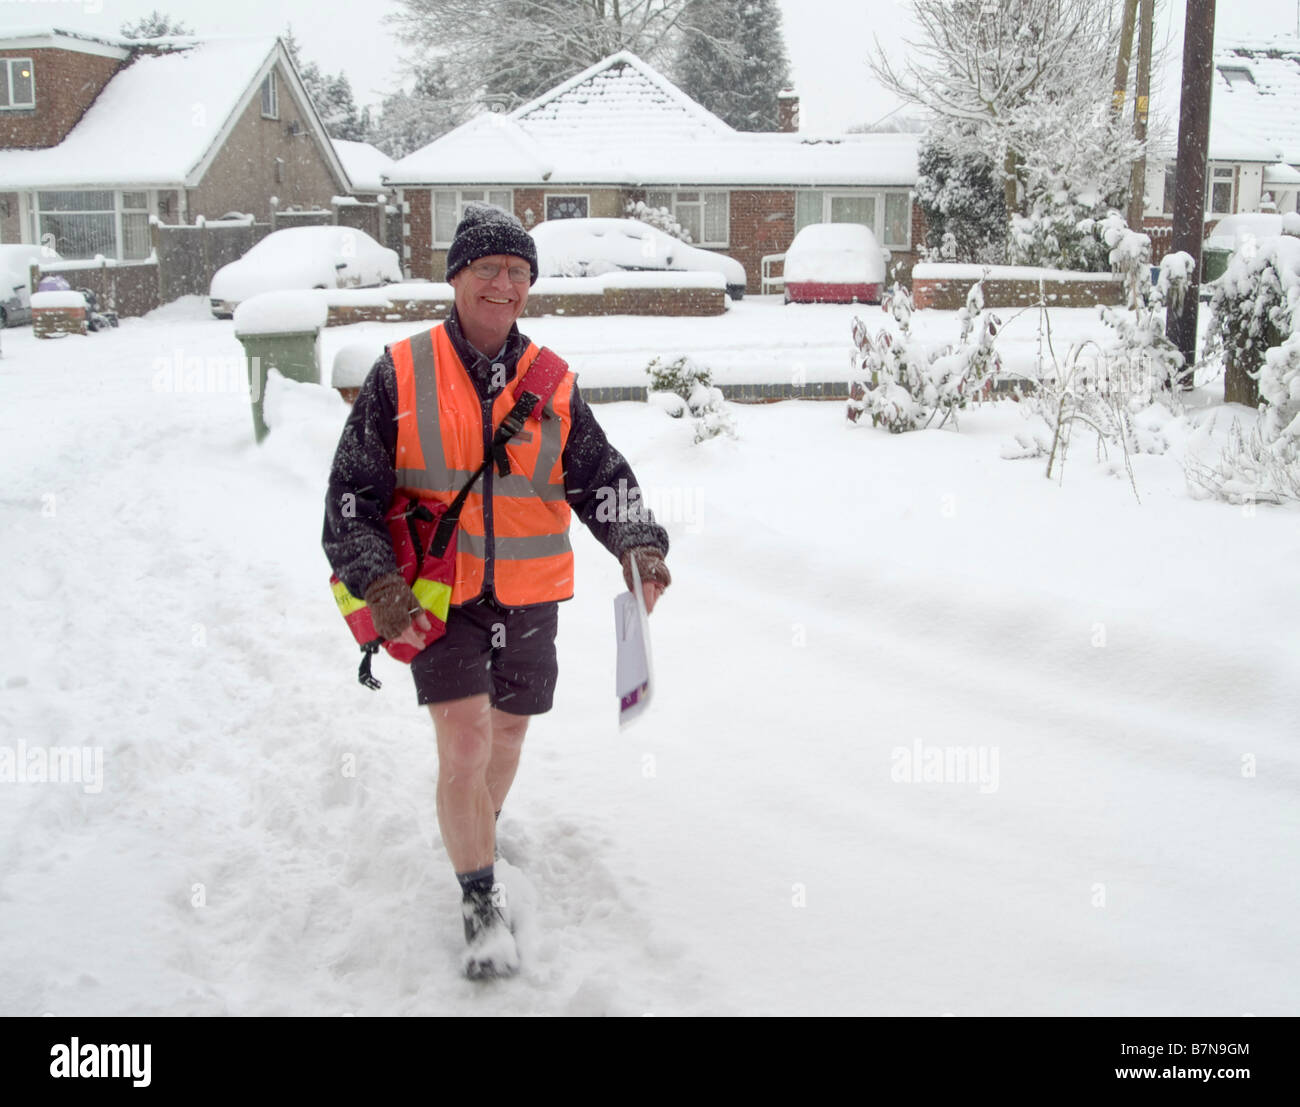 Cheery Postman wearing shorts during a snow storm. Biggin Hill, Bromley, Westerham, Kent England, UK. - Stock Image